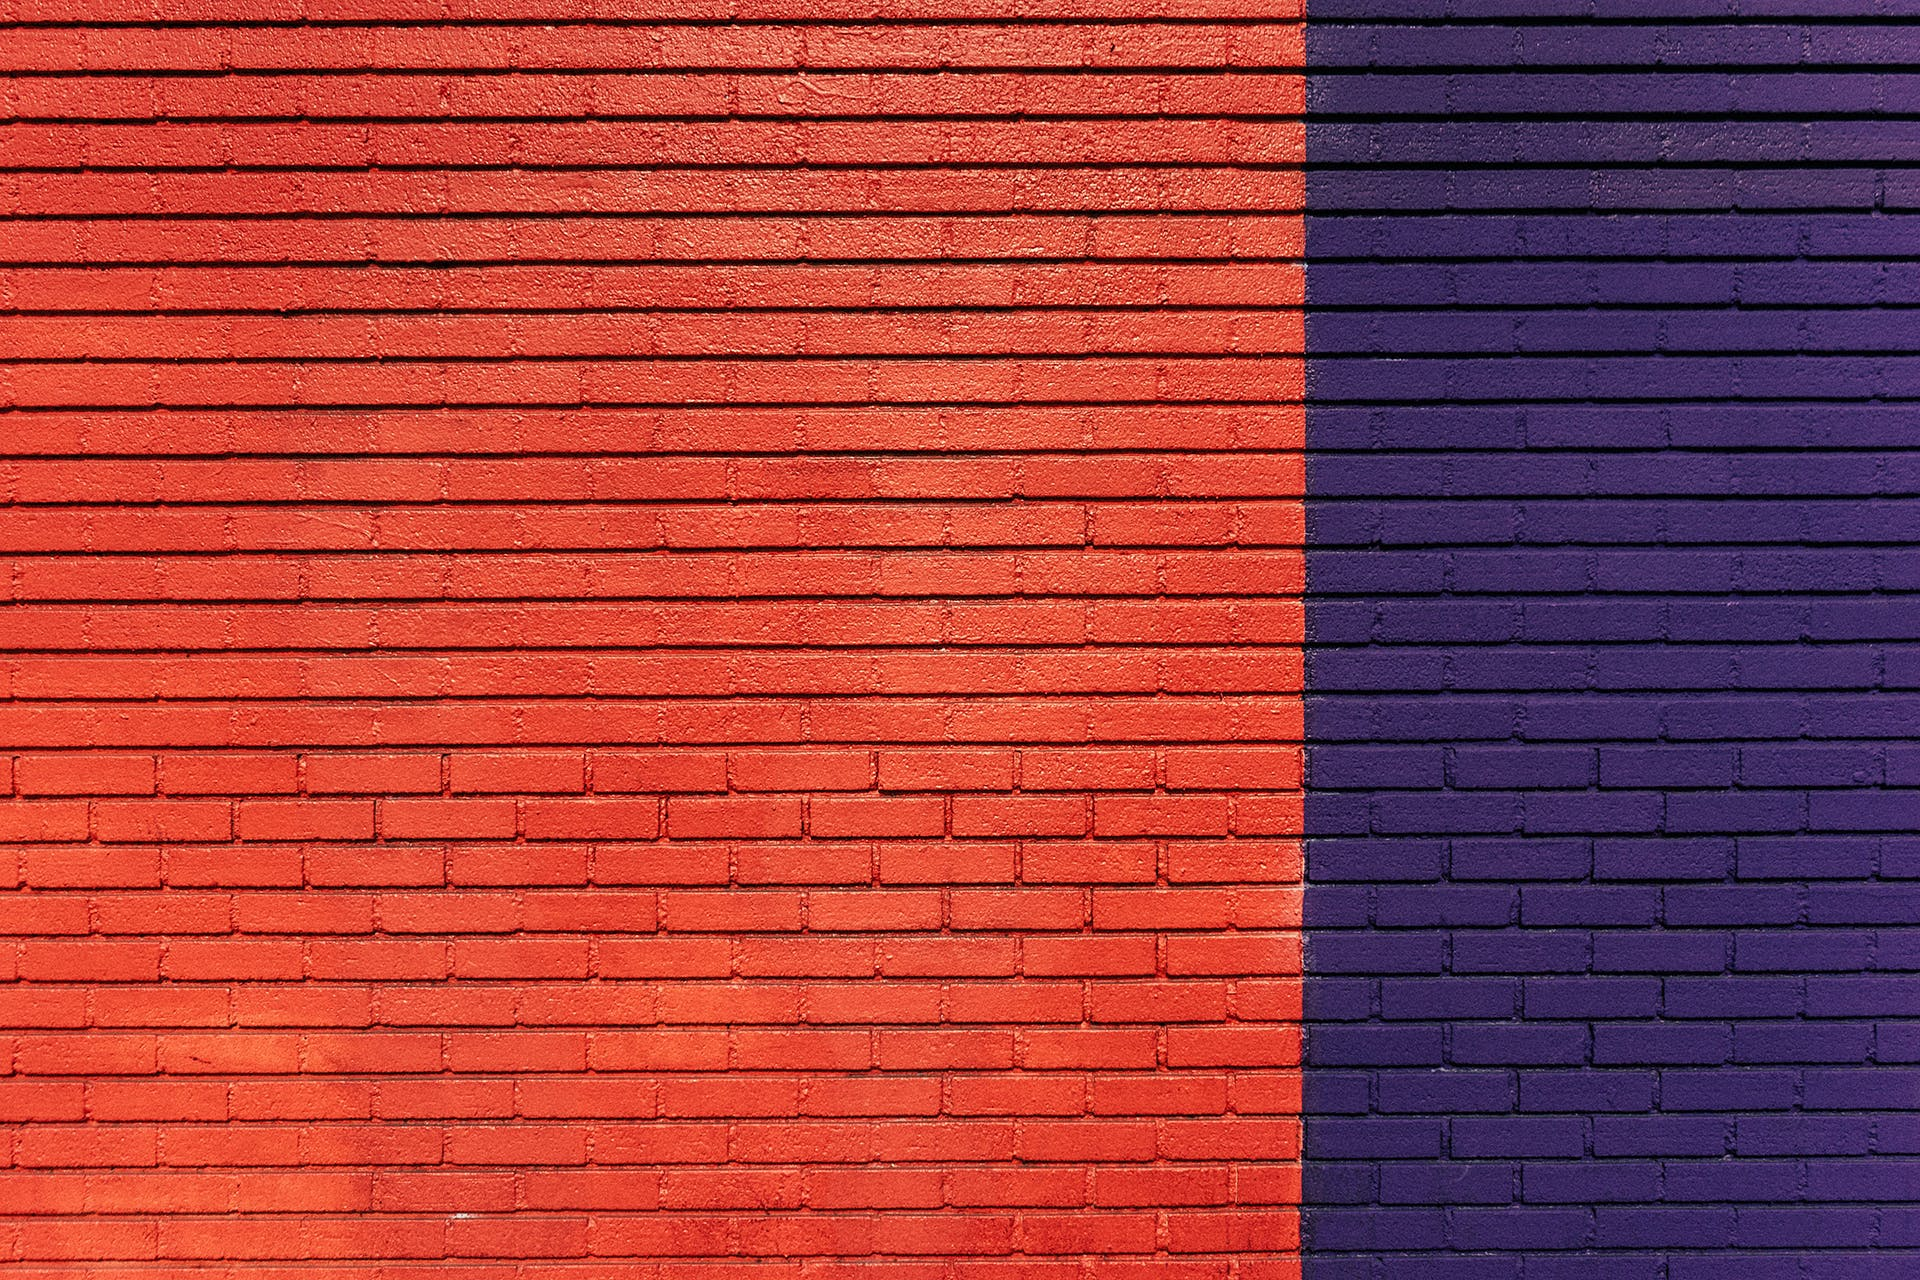 Red and Purple Concrete Wall